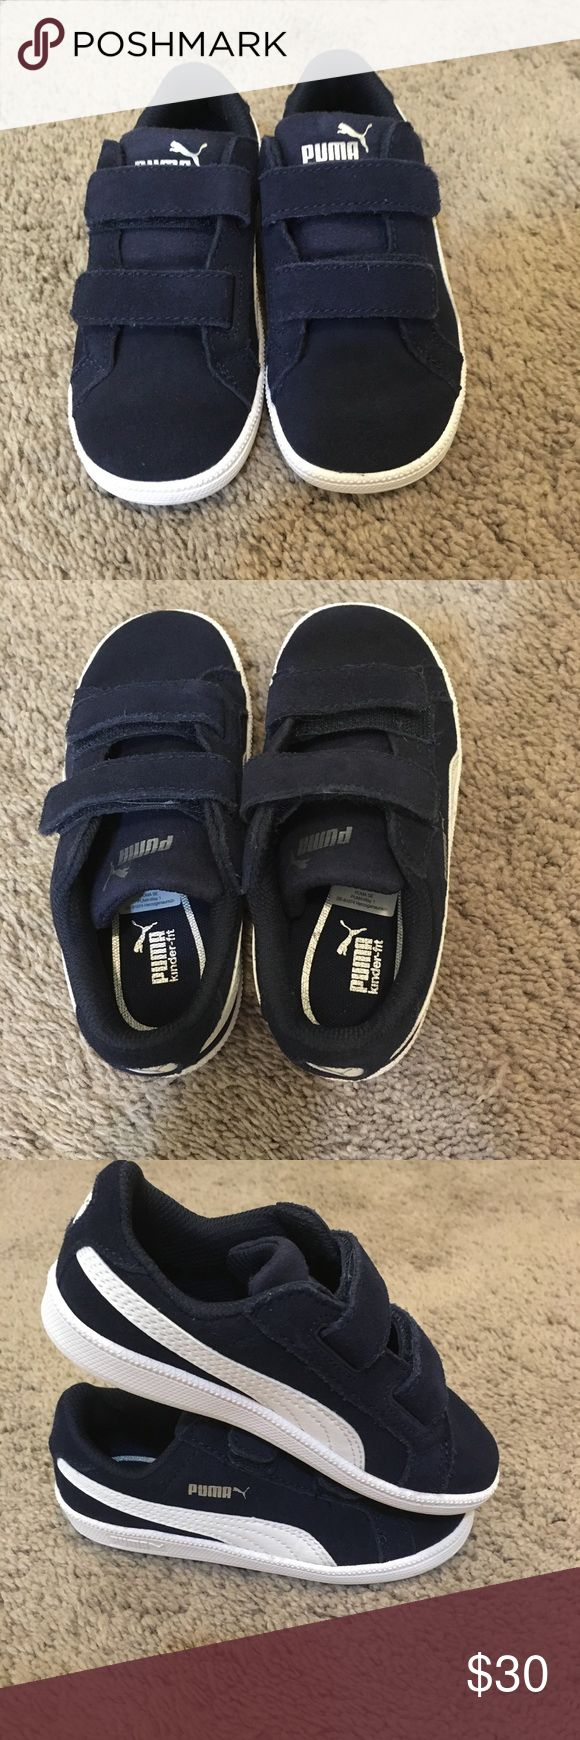 Puma Toddler Suede Sneakers Size 9C Never worn. New in box. For some reason my little two year old never wanted to wear them.... and we had others so I never pushed it! Reasonable offers welcome. I'm very flexible with bundles! Puma Shoes Sneakers